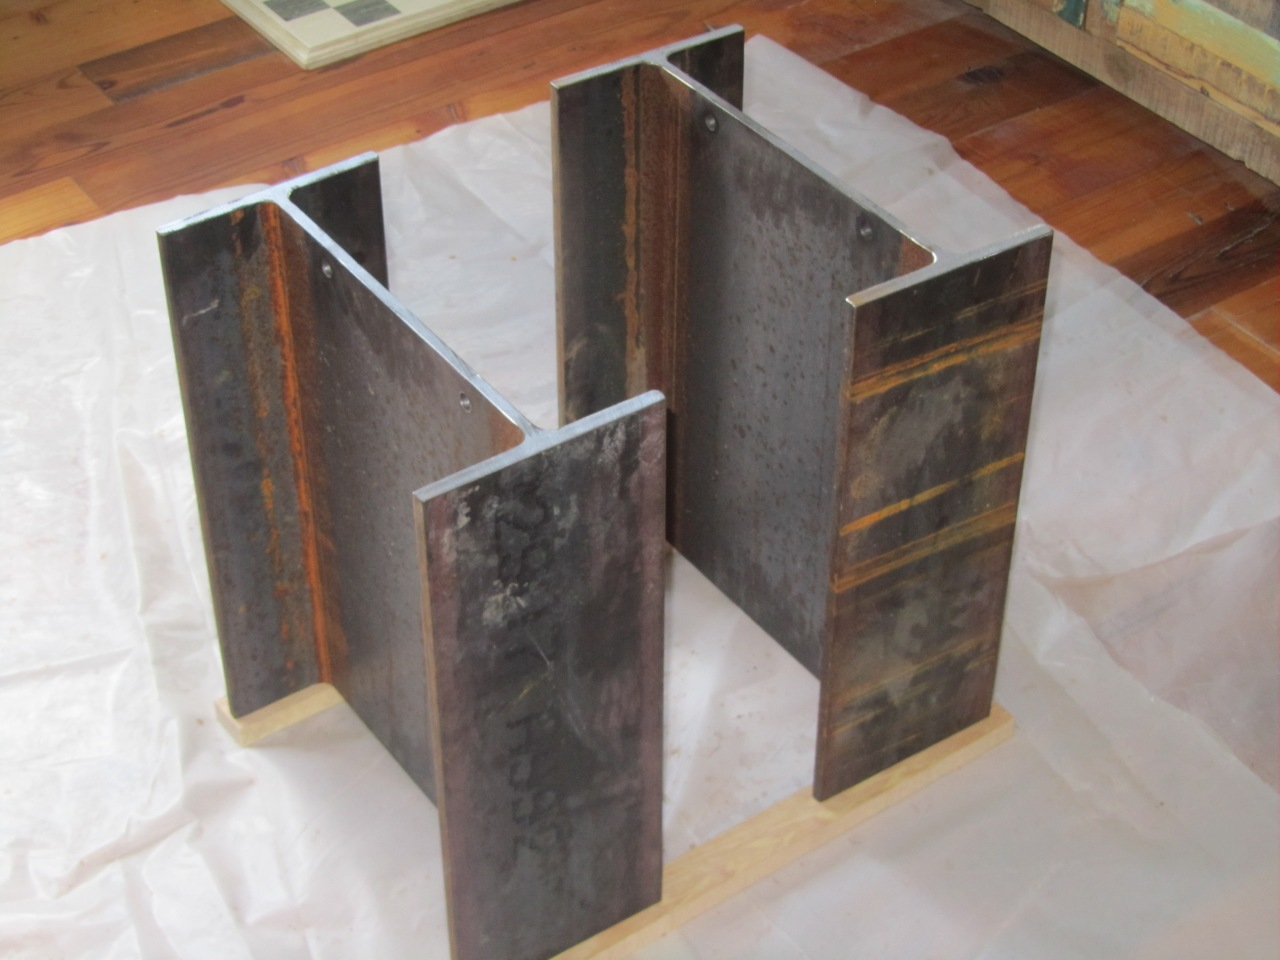 "W14 X 38 STEEL I BEAM, 18"" LONG, WITH (2) 1/2"" HOLES IN EACH"